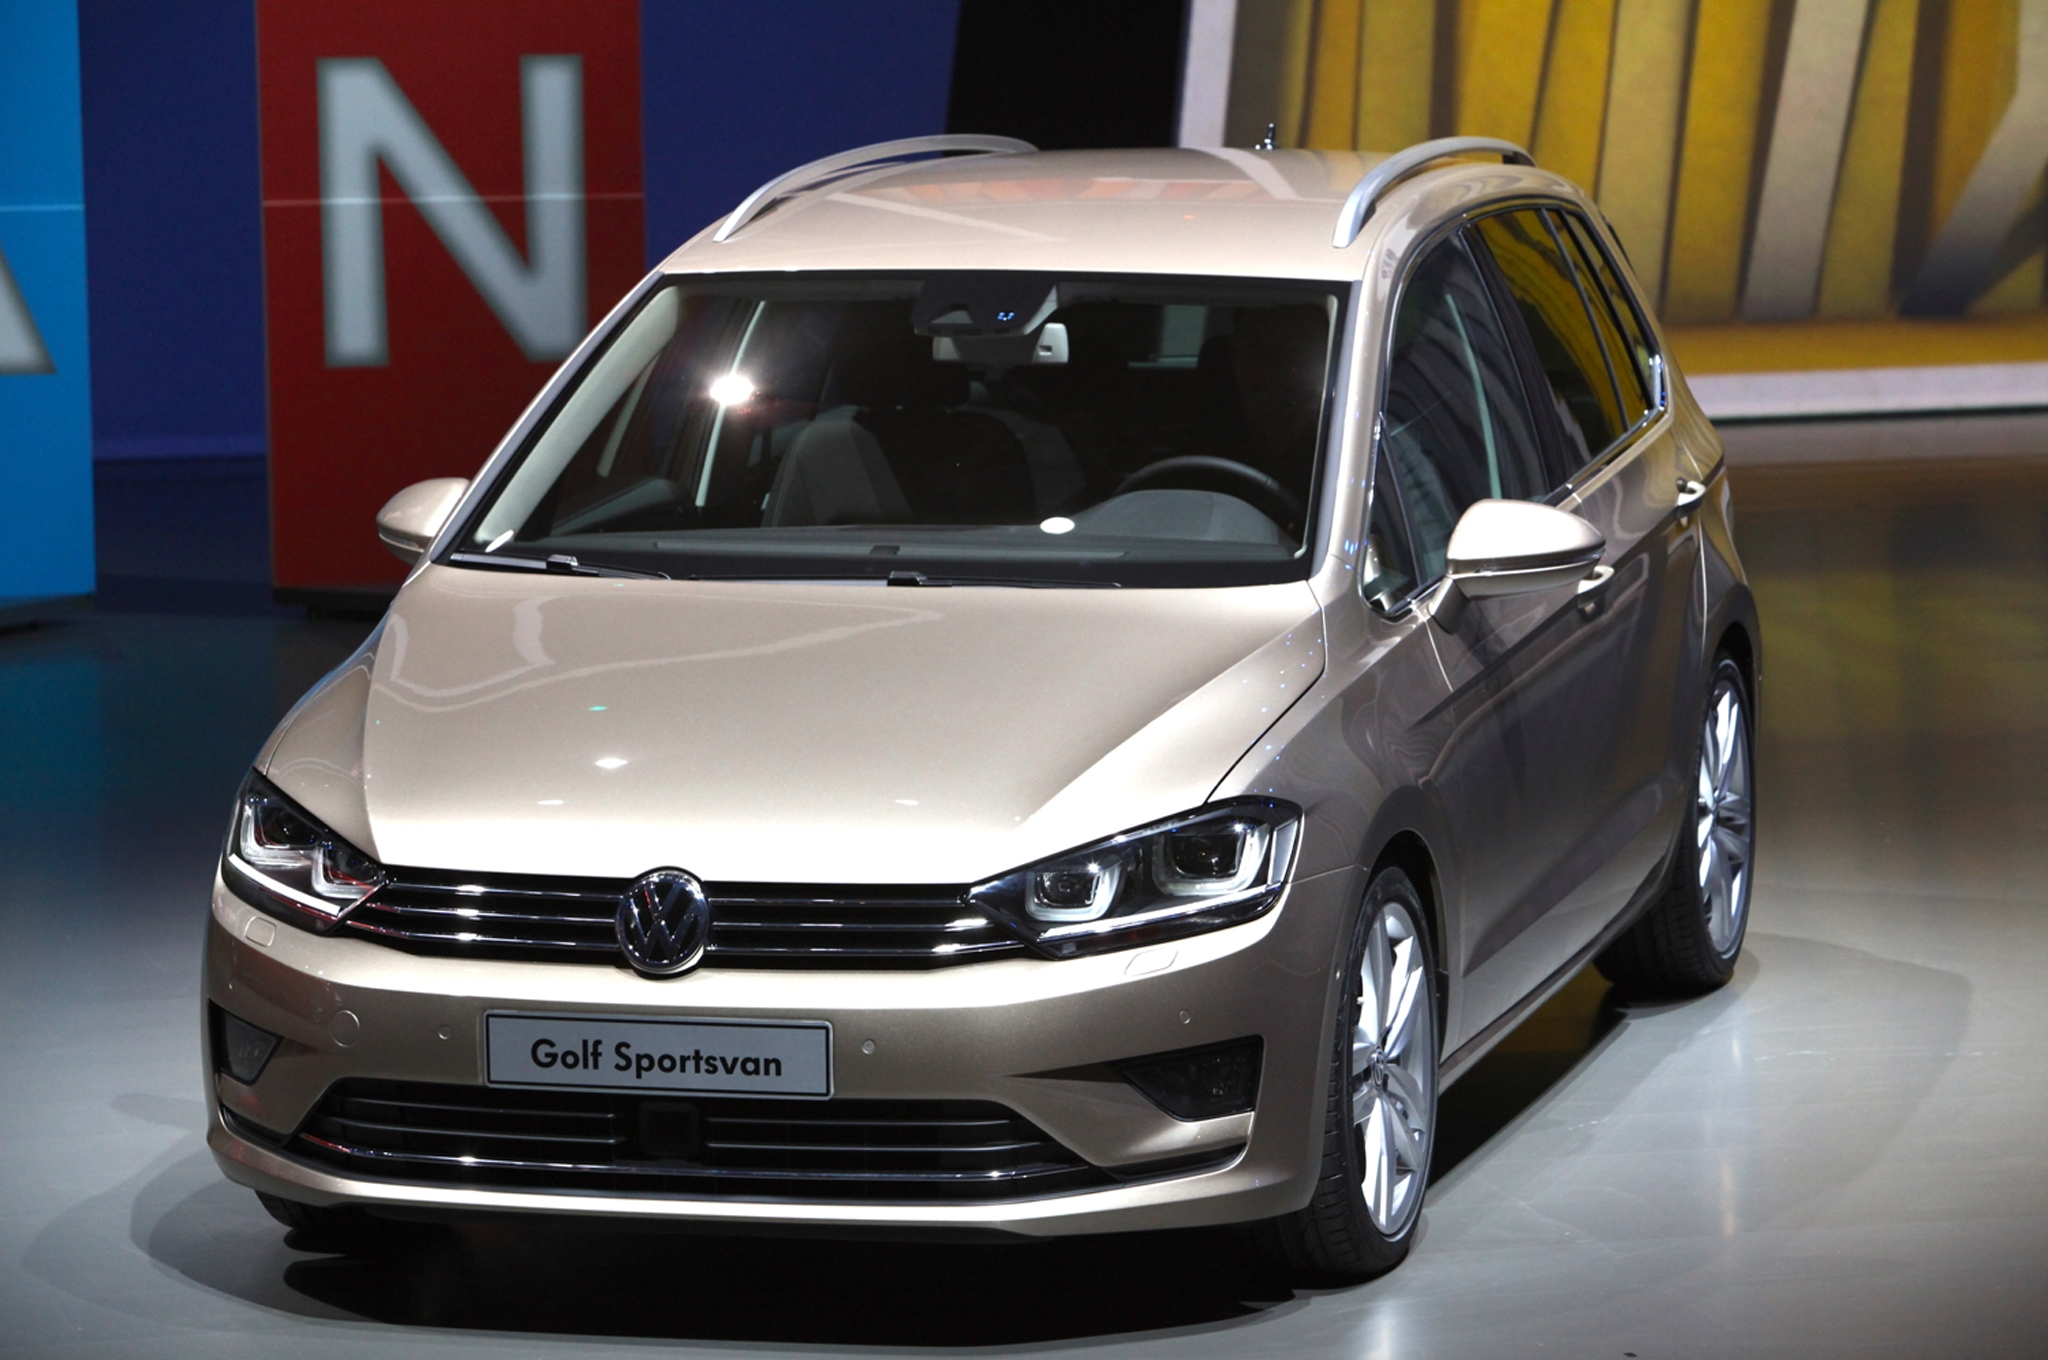 2017 Volkswagen Golf Sportsvan Concept | Car Photos ...